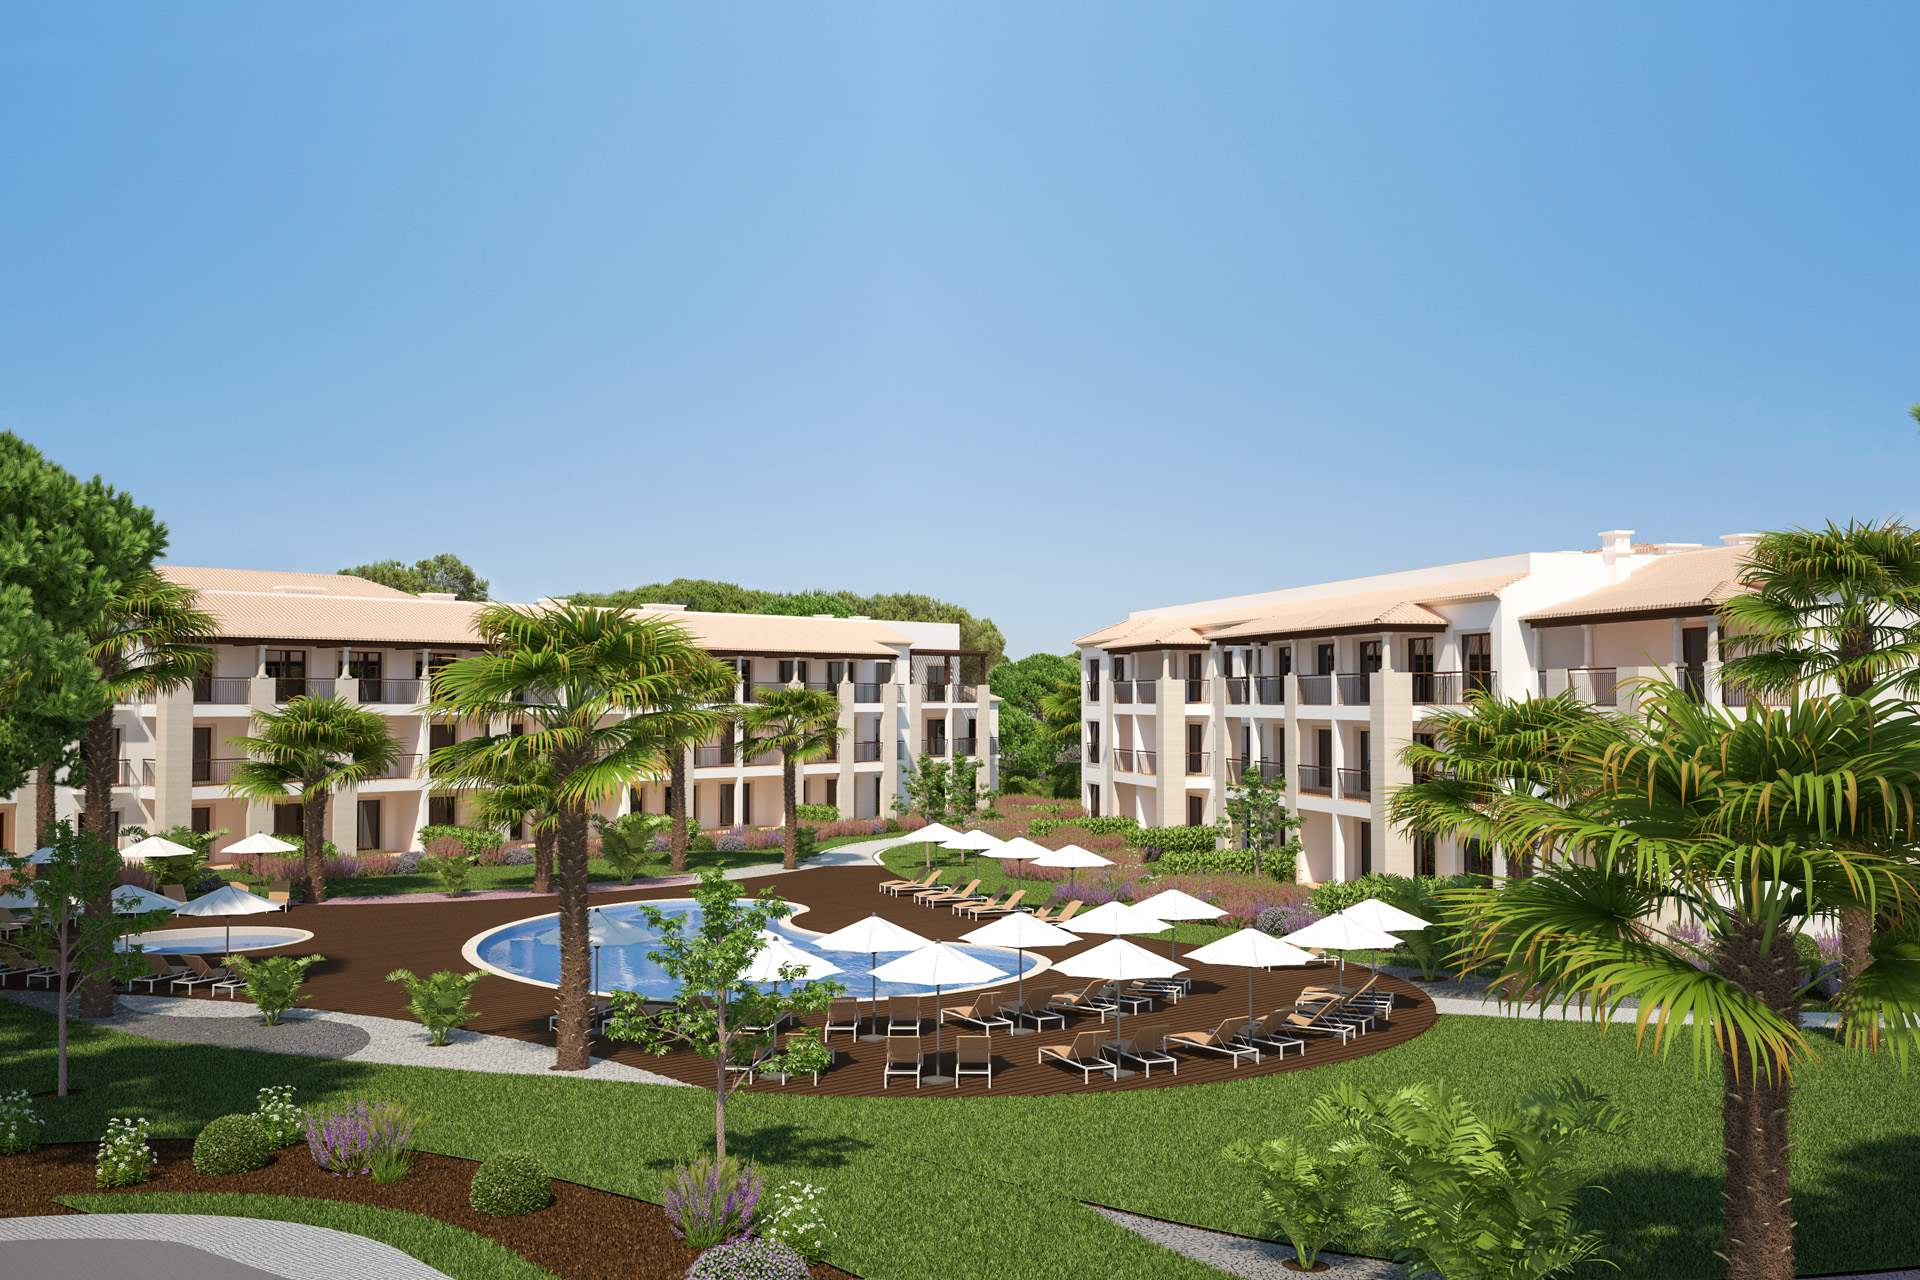 Pine Cliffs Gardens, One Bedroom Suite, S/C Basis, 1 bedroom apartment in Pine Cliffs Resort, Algarve Photo #9